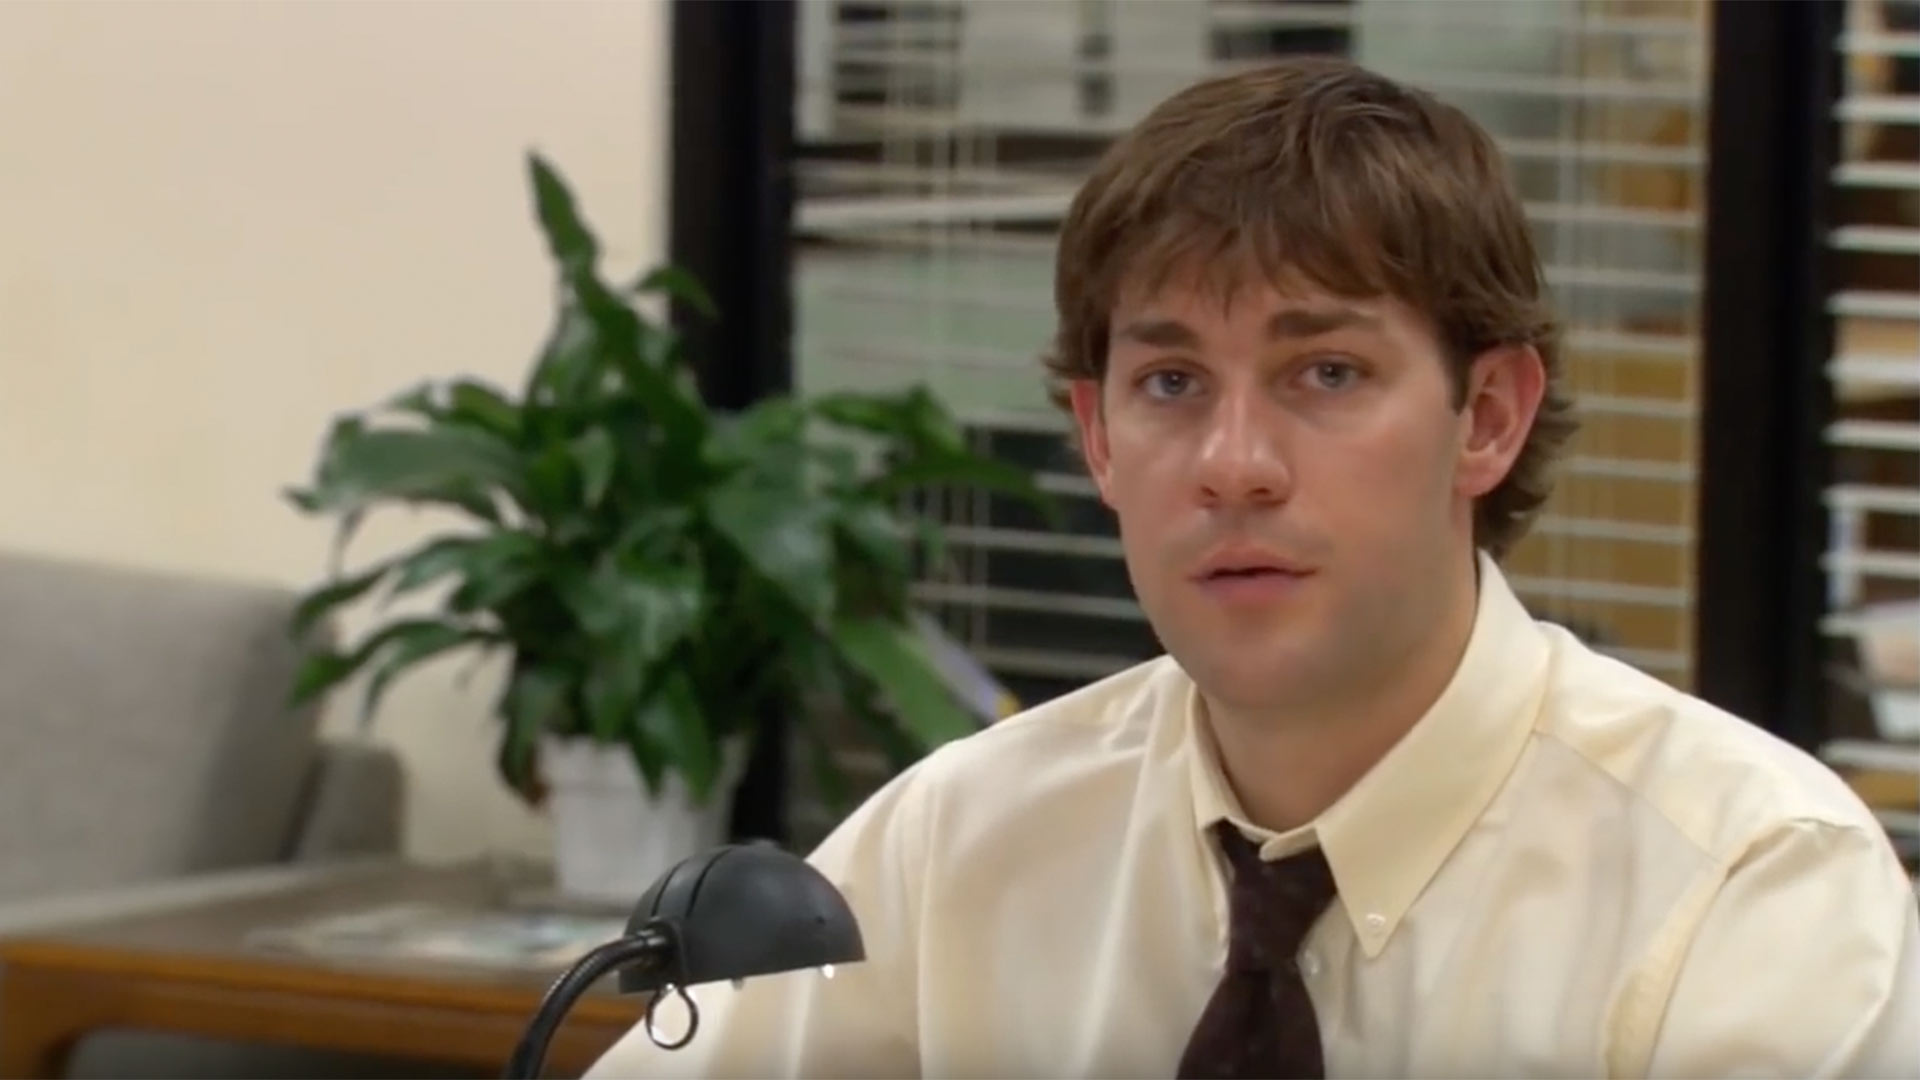 This Office Hilarious Opening Scene Was a Complete Accident